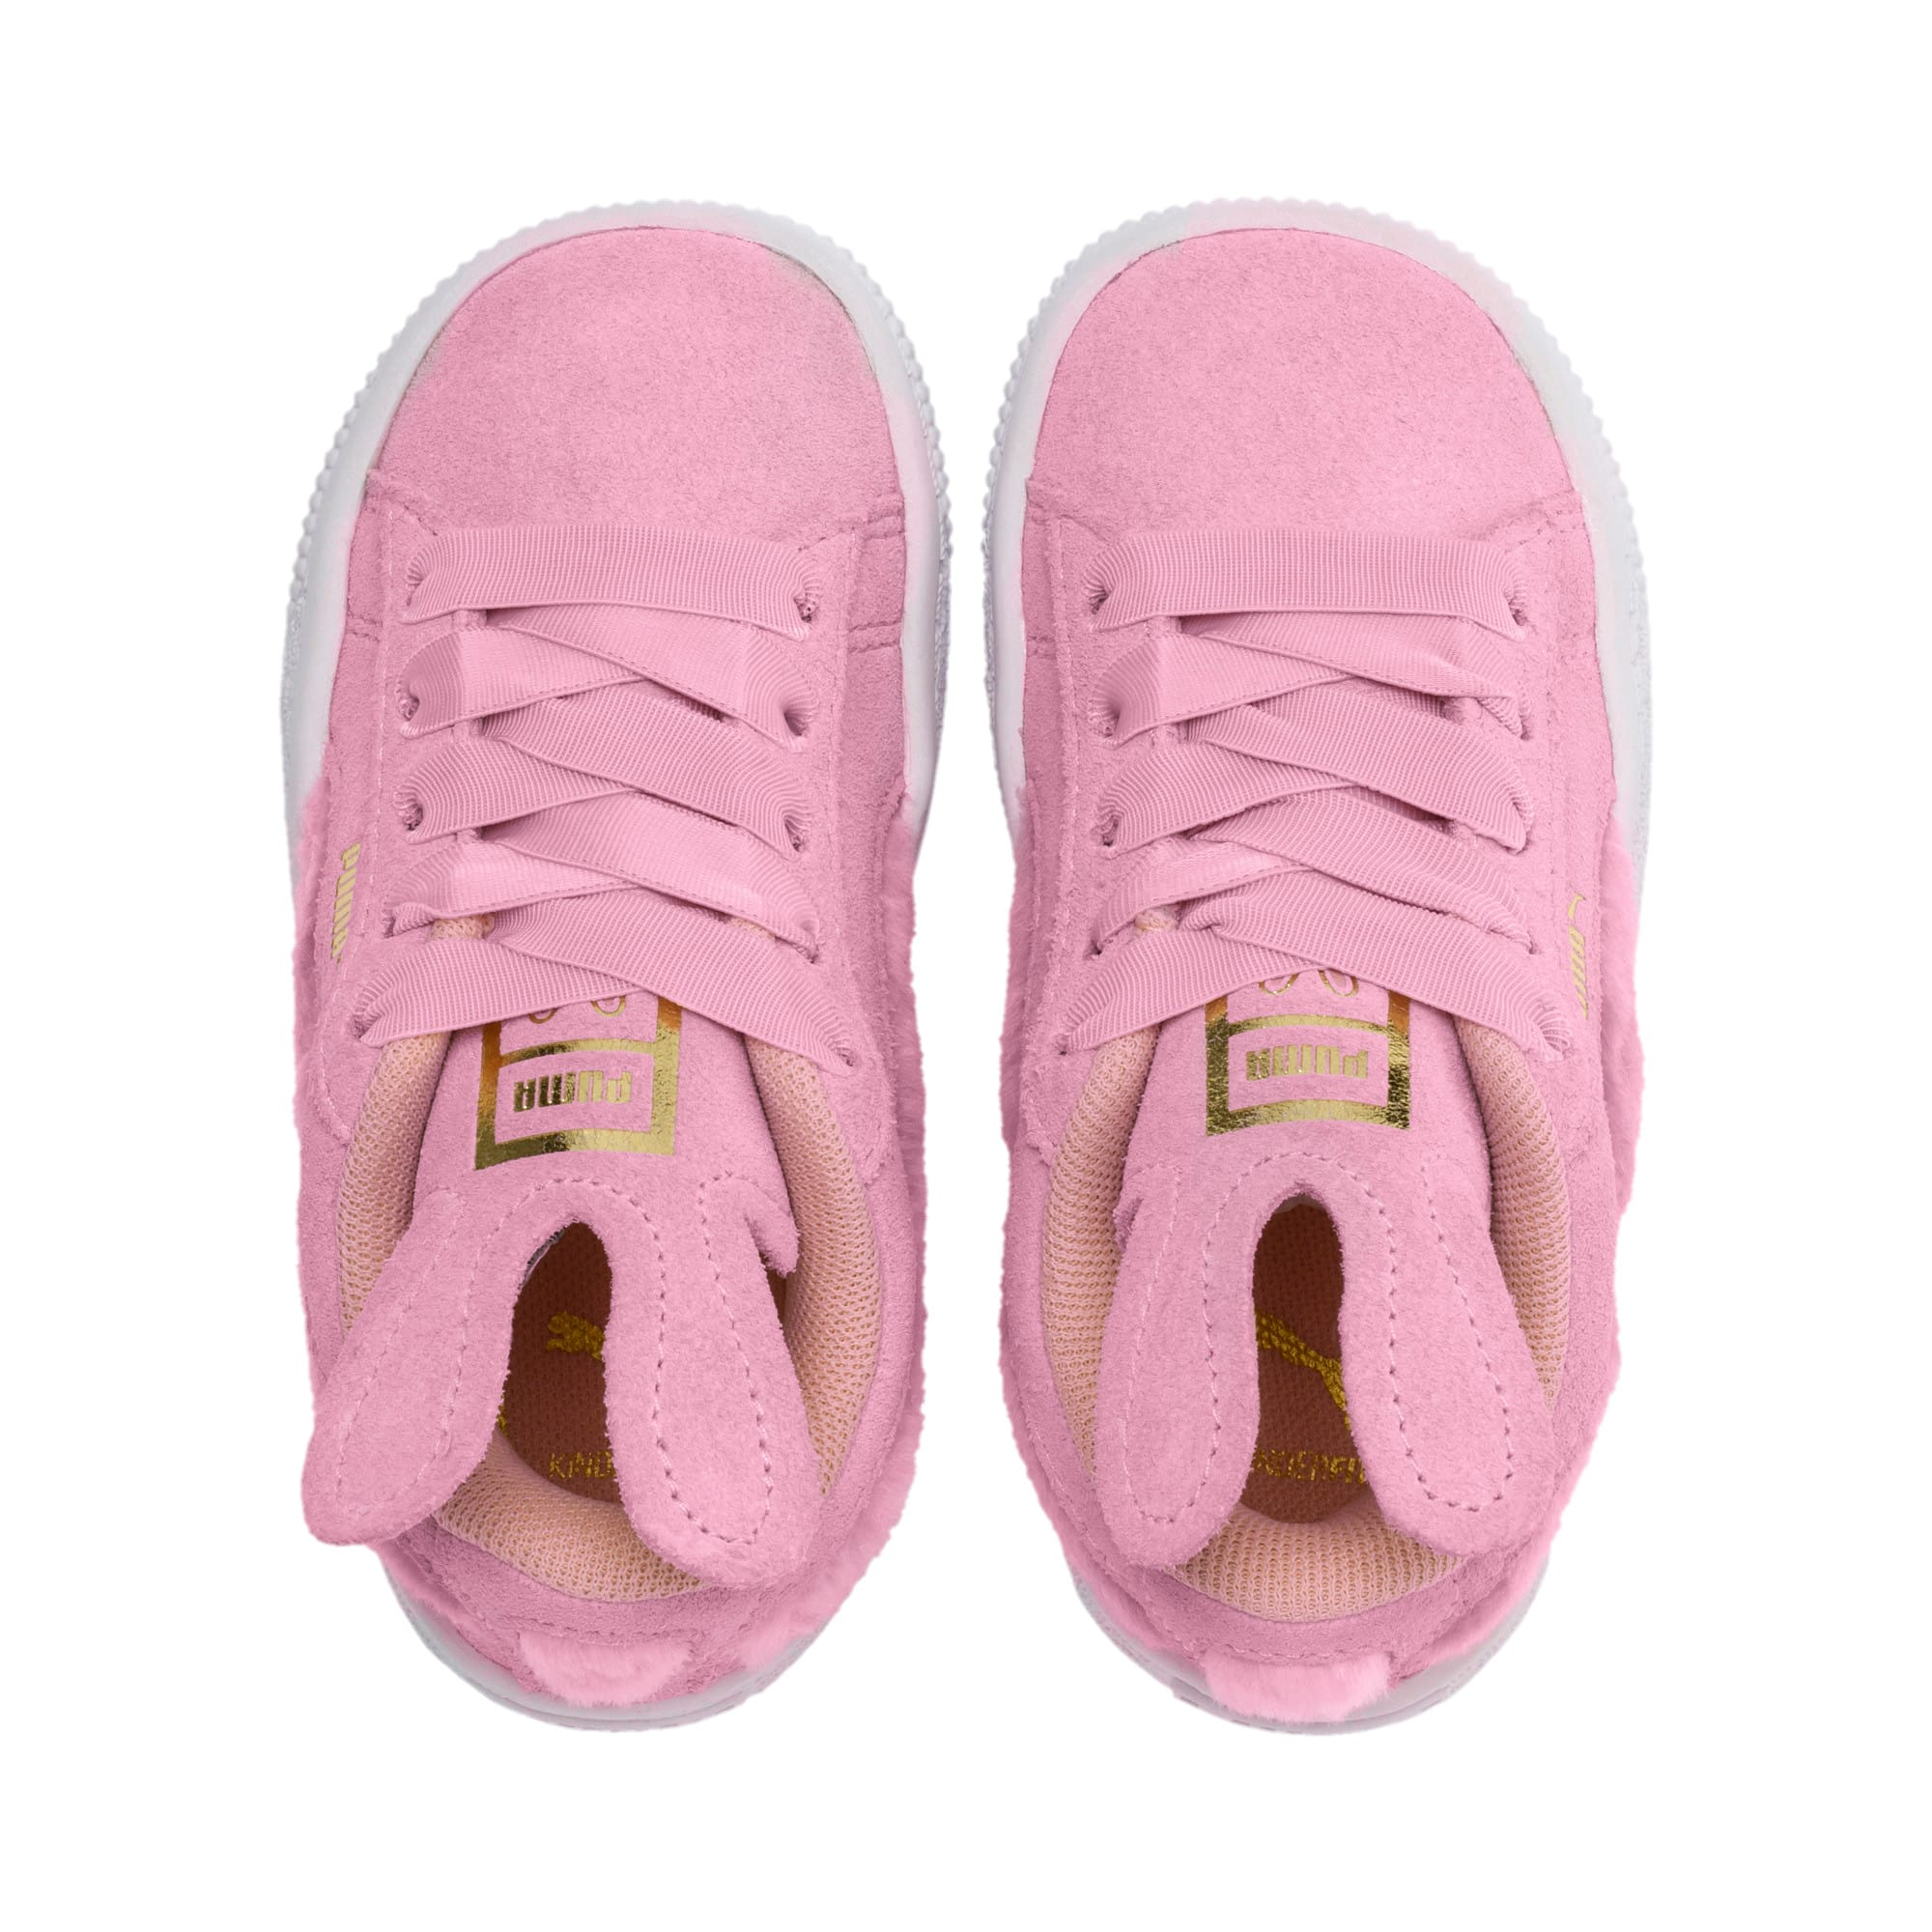 Thumbnail 6 of Suede Easter Alternate Closure Baby Sneaker, Pale Pink-Coral Cloud, medium